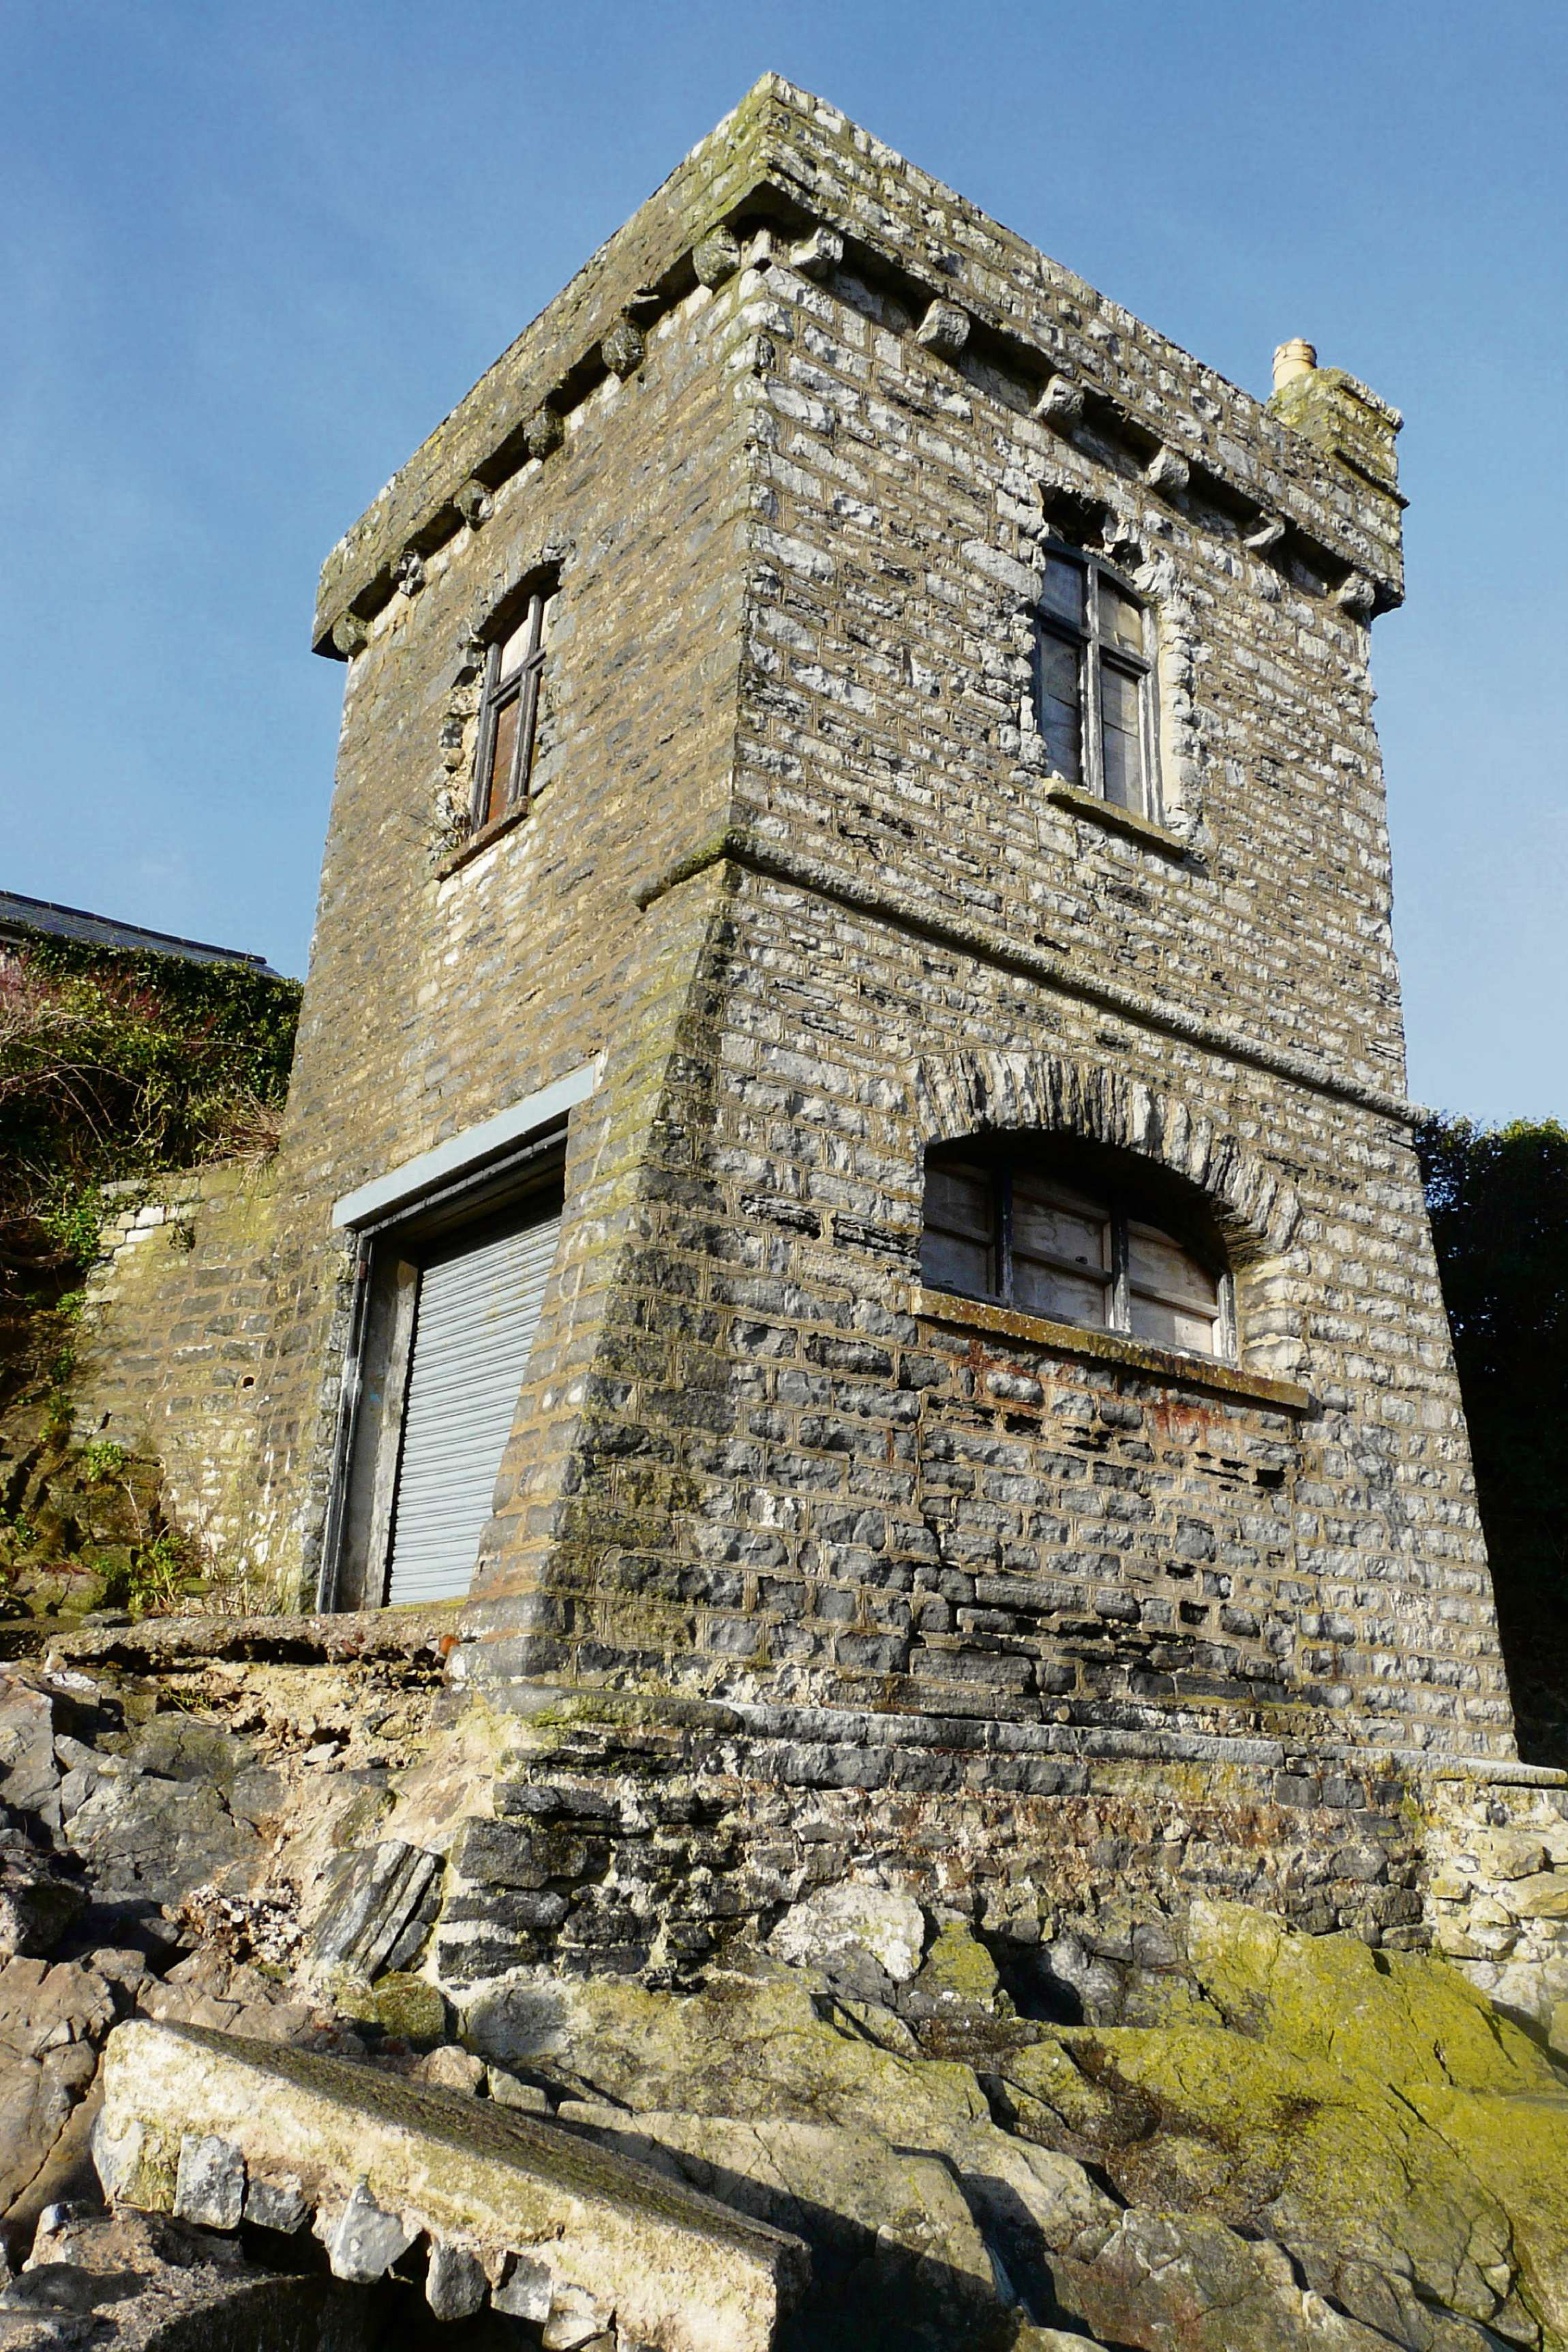 AUCTION WATCH: The Watchtower attracted much interest